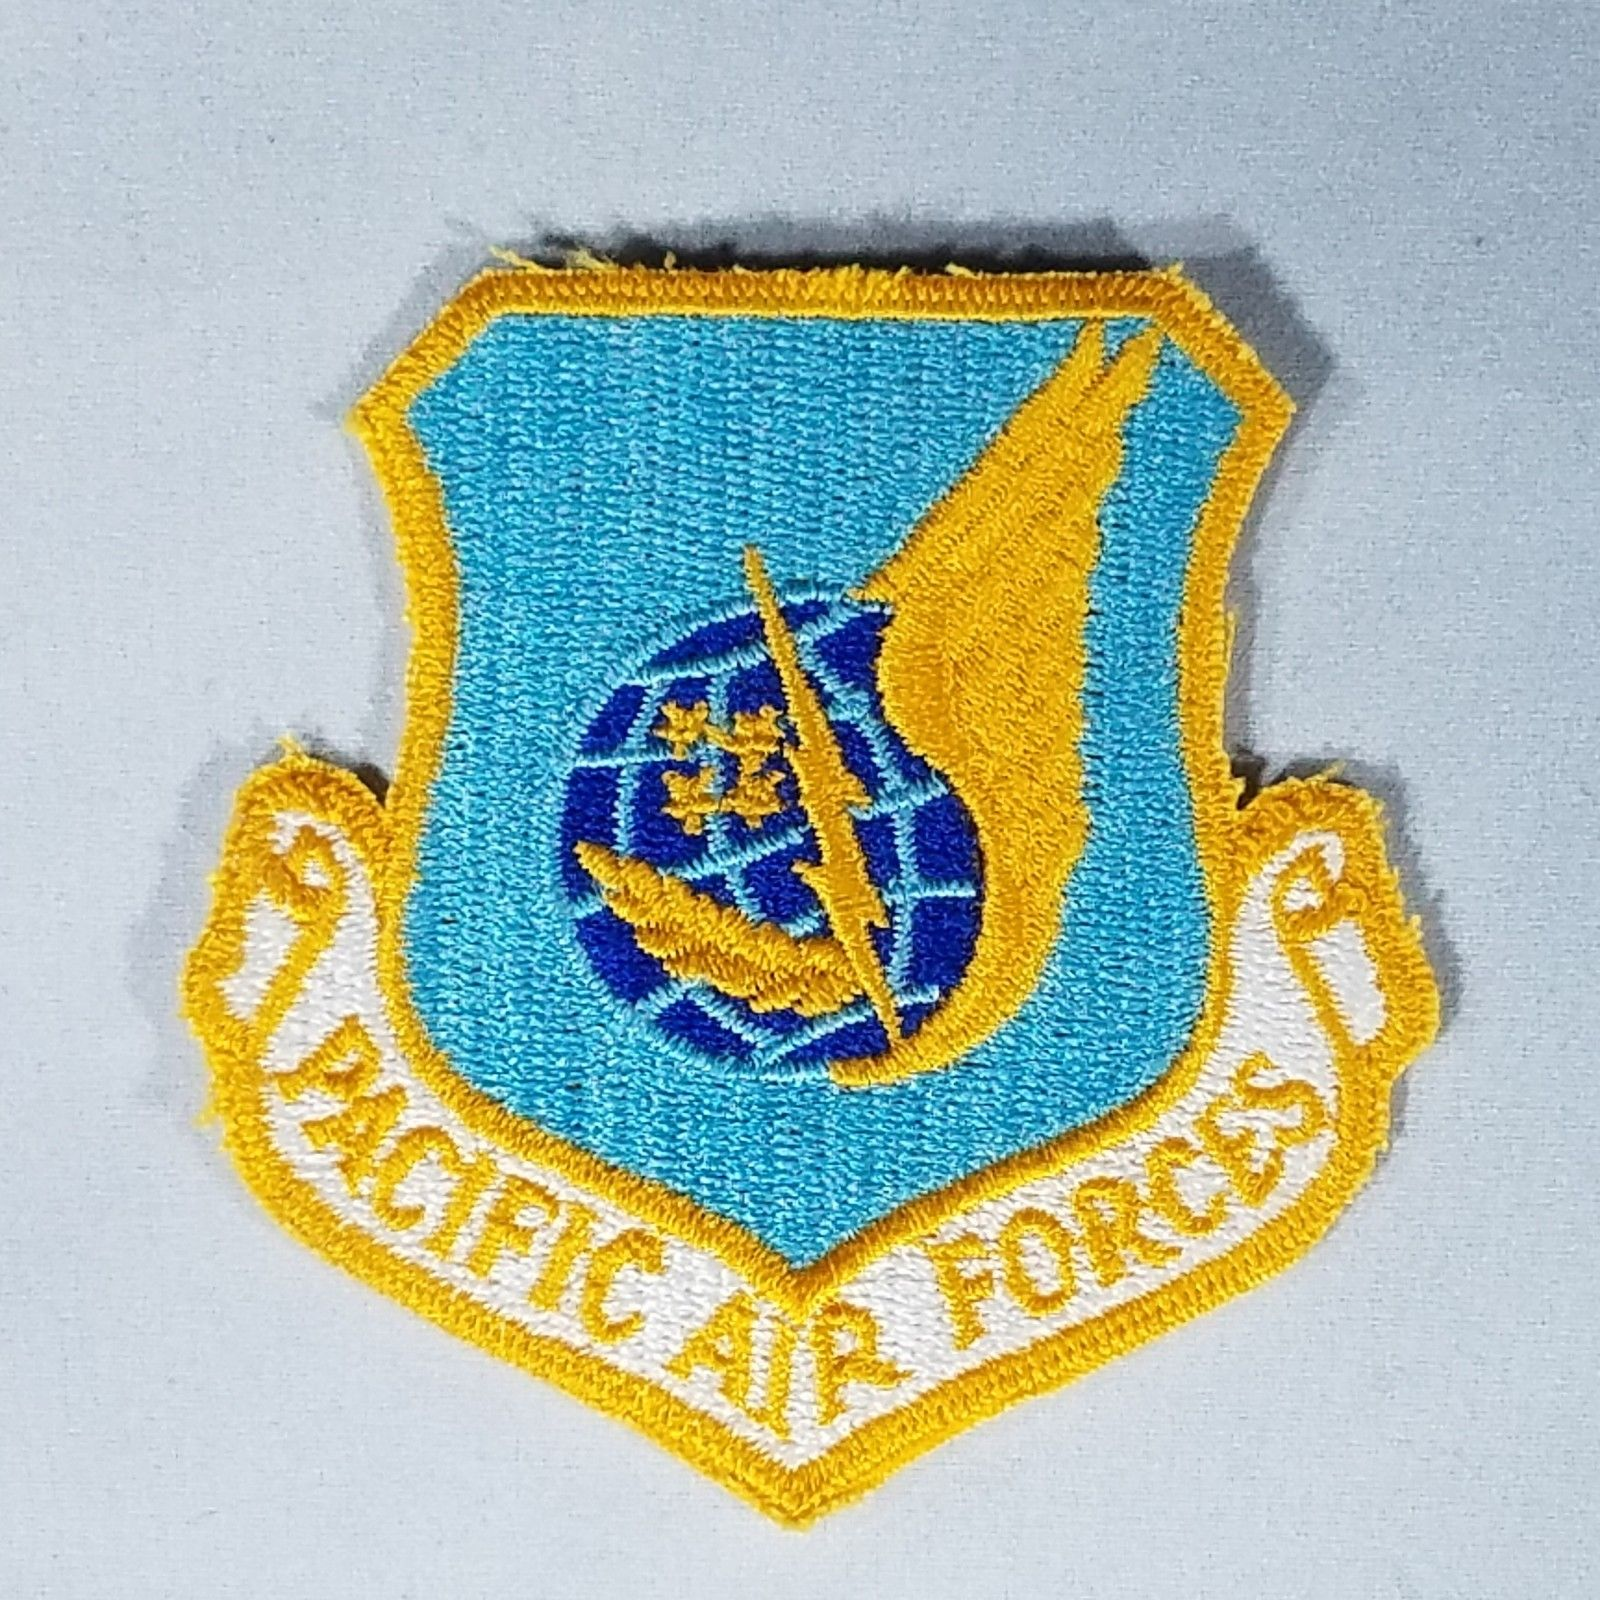 Pacific Air Forces Patch - PACAF - USAF United States Air Force - Military